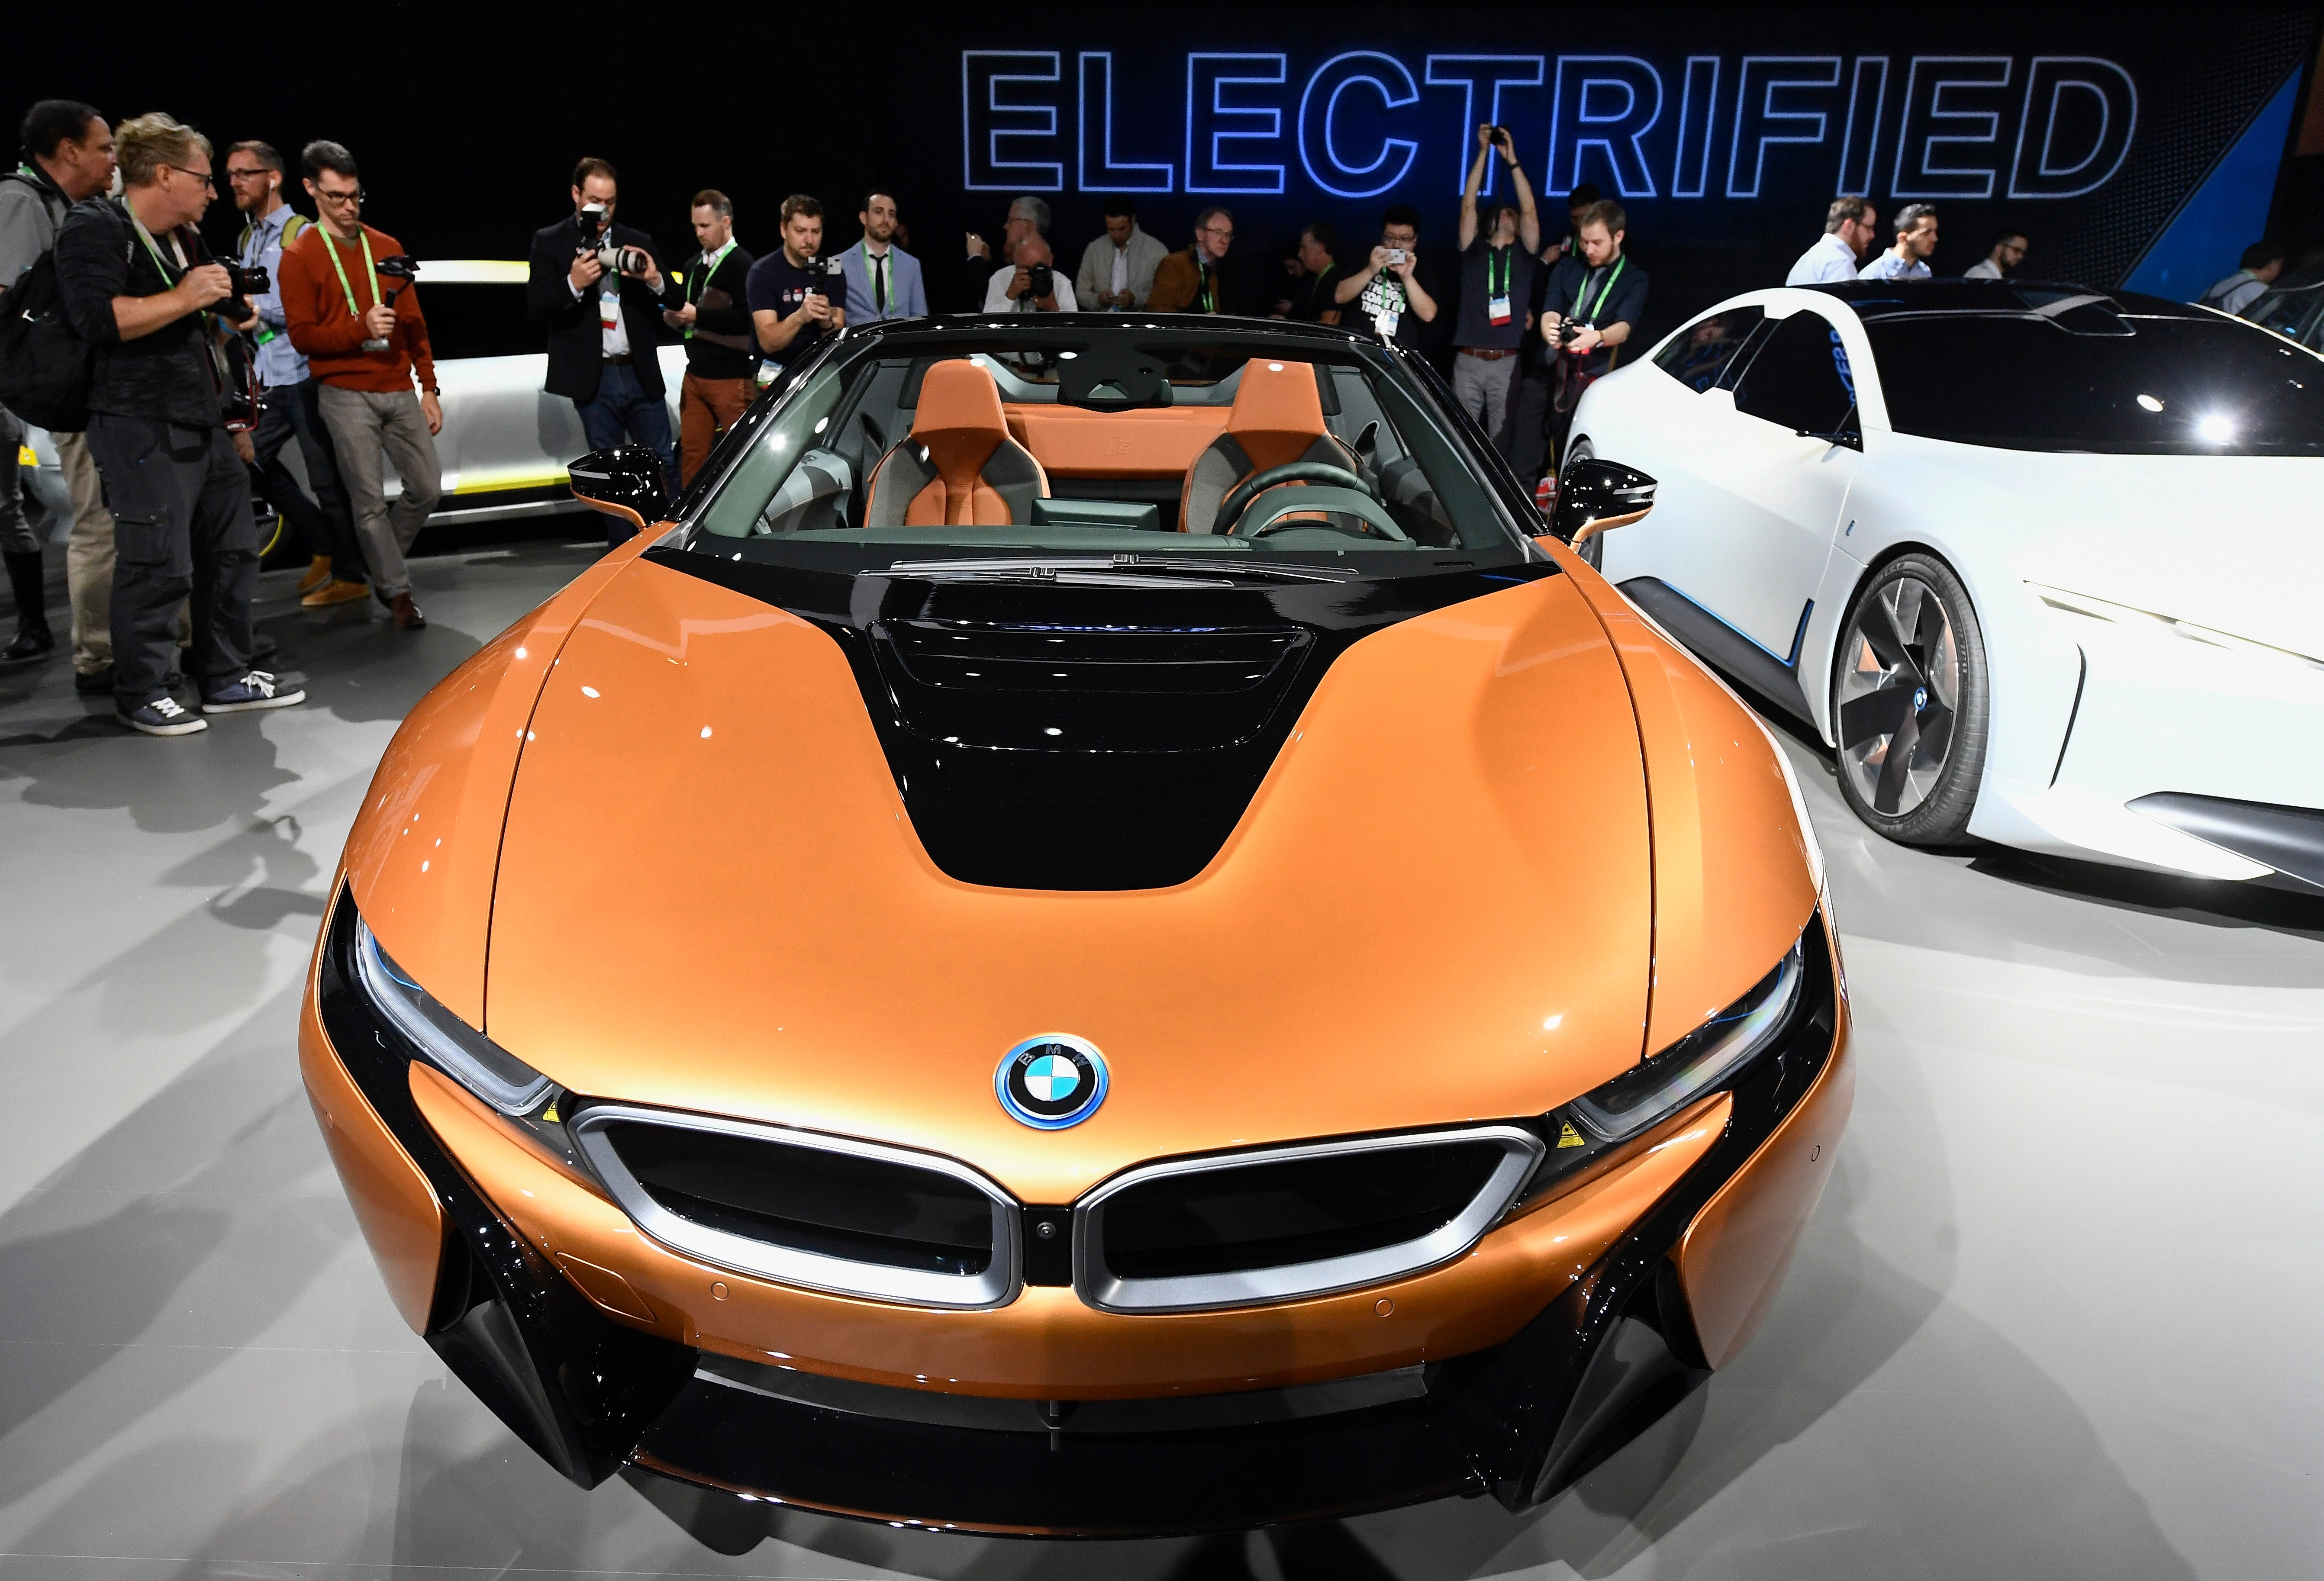 BMW Unveiled The BMW I8 Roadster At A Press Conference